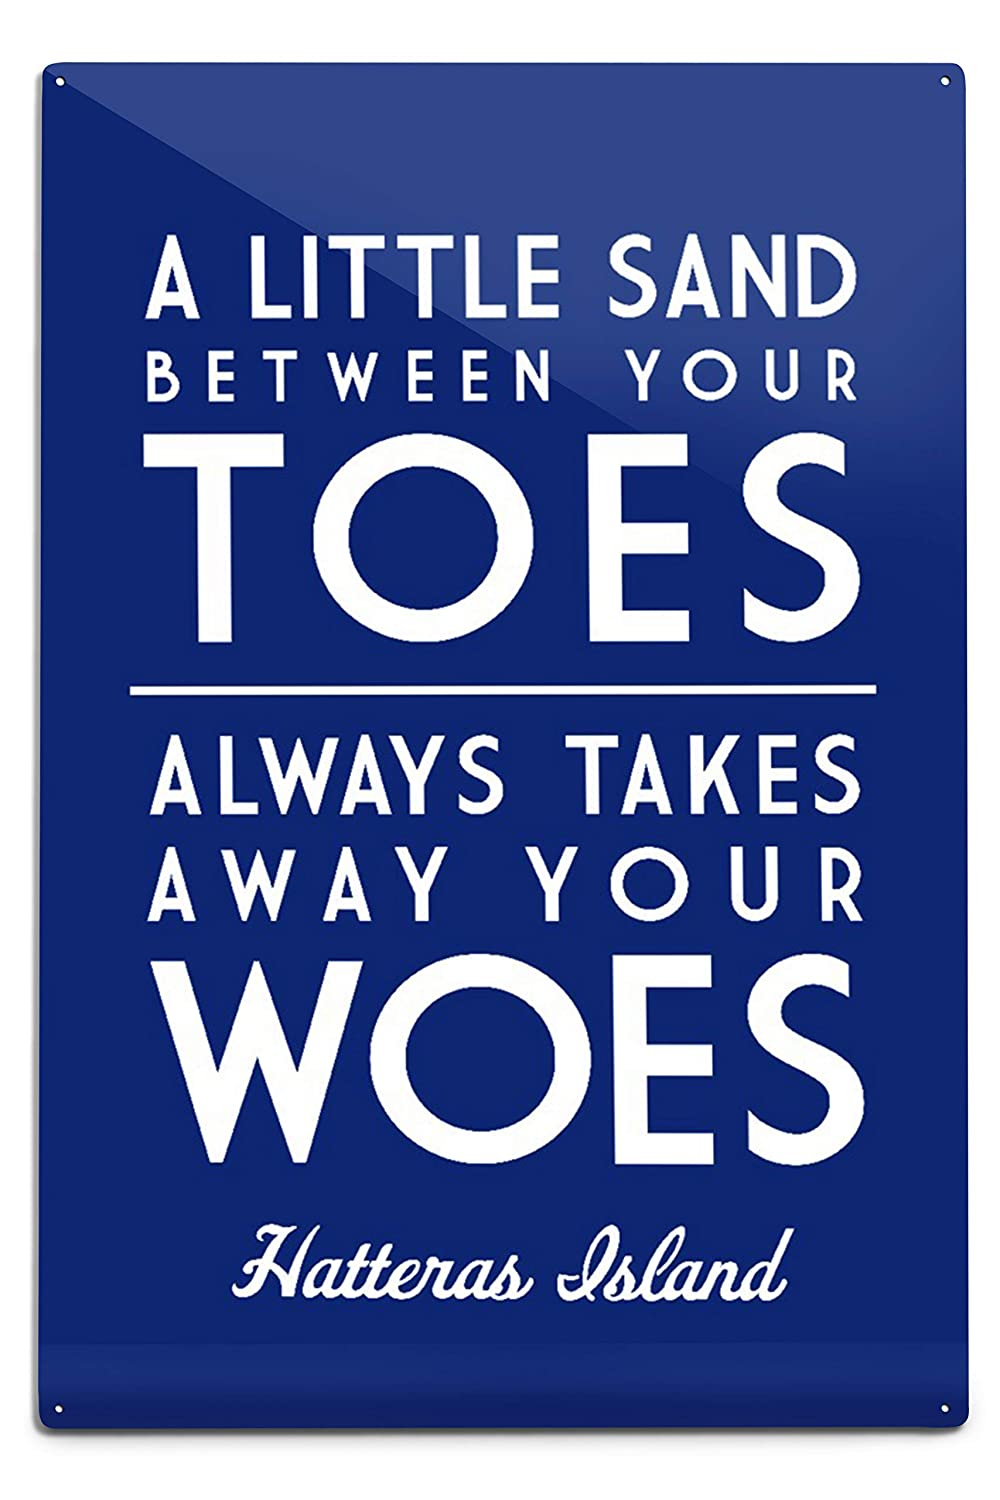 24x36 SIGNED Print Master Art Print - Wall Decor Poster A Little Sand Between Your Toes Hatteras Island North Carolina Simply Said Press 85711